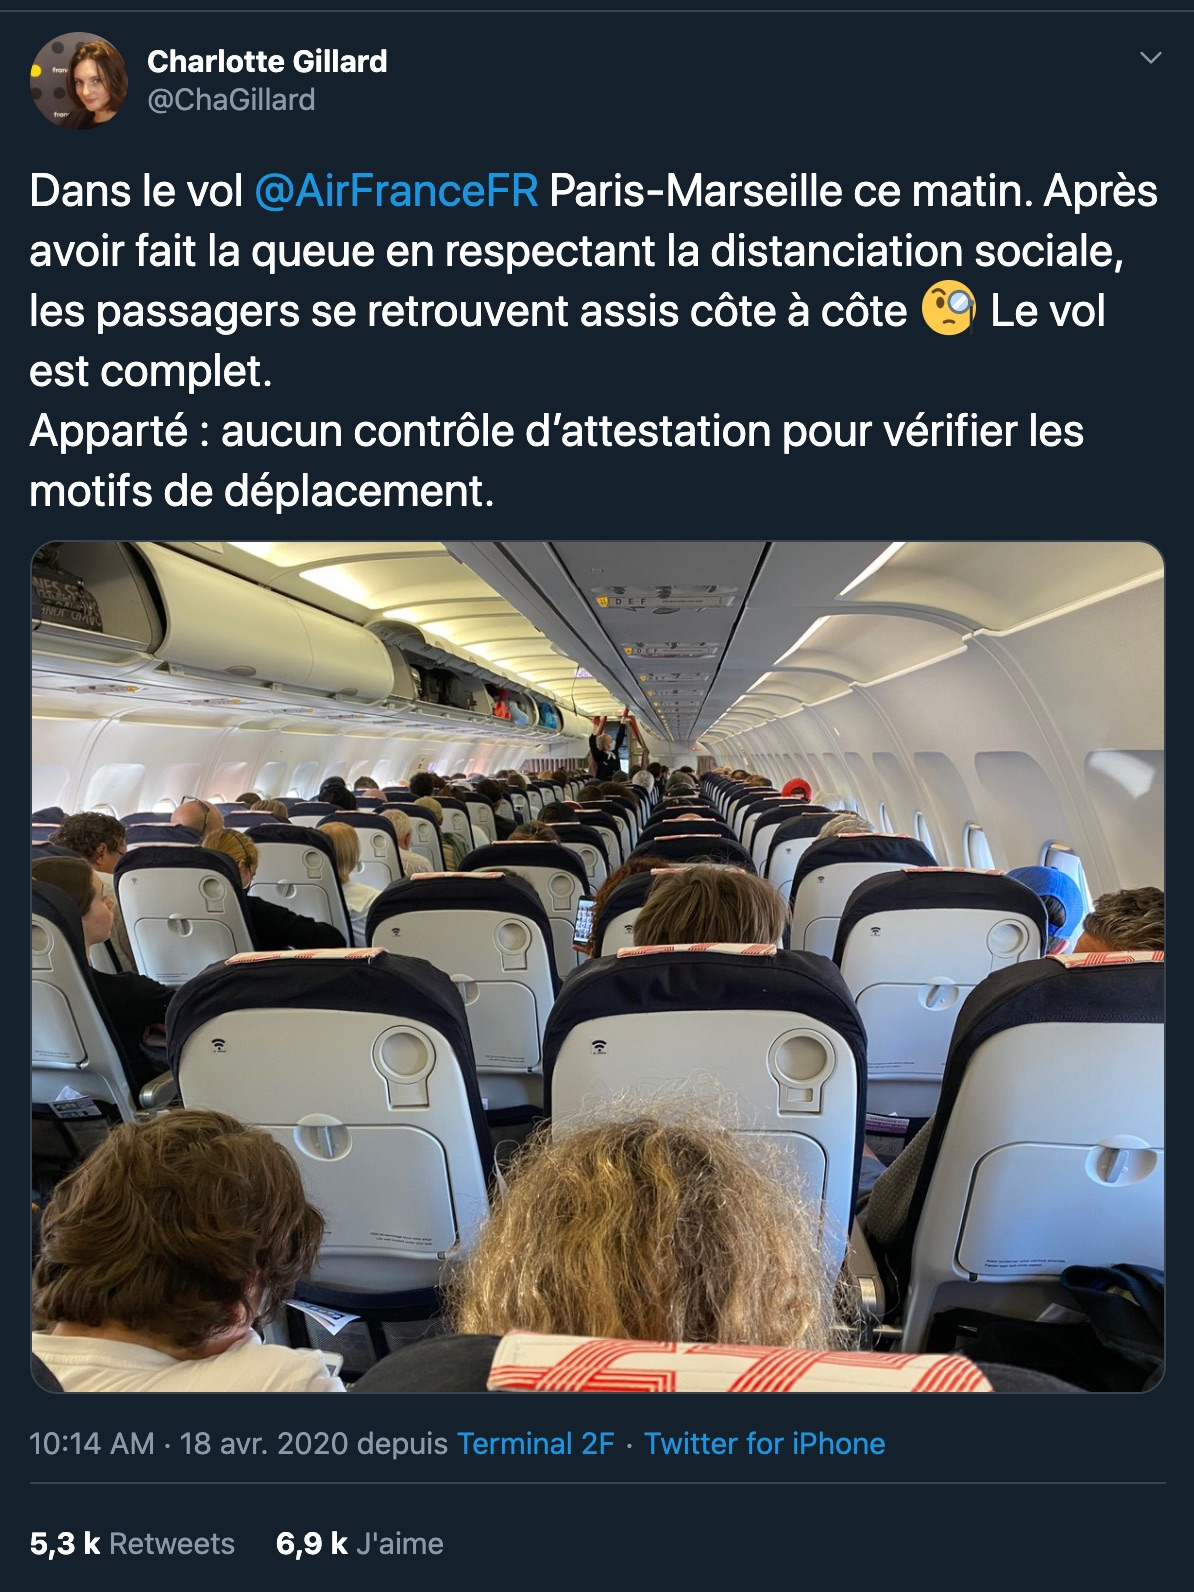 Paris Marseille Air France Twitter